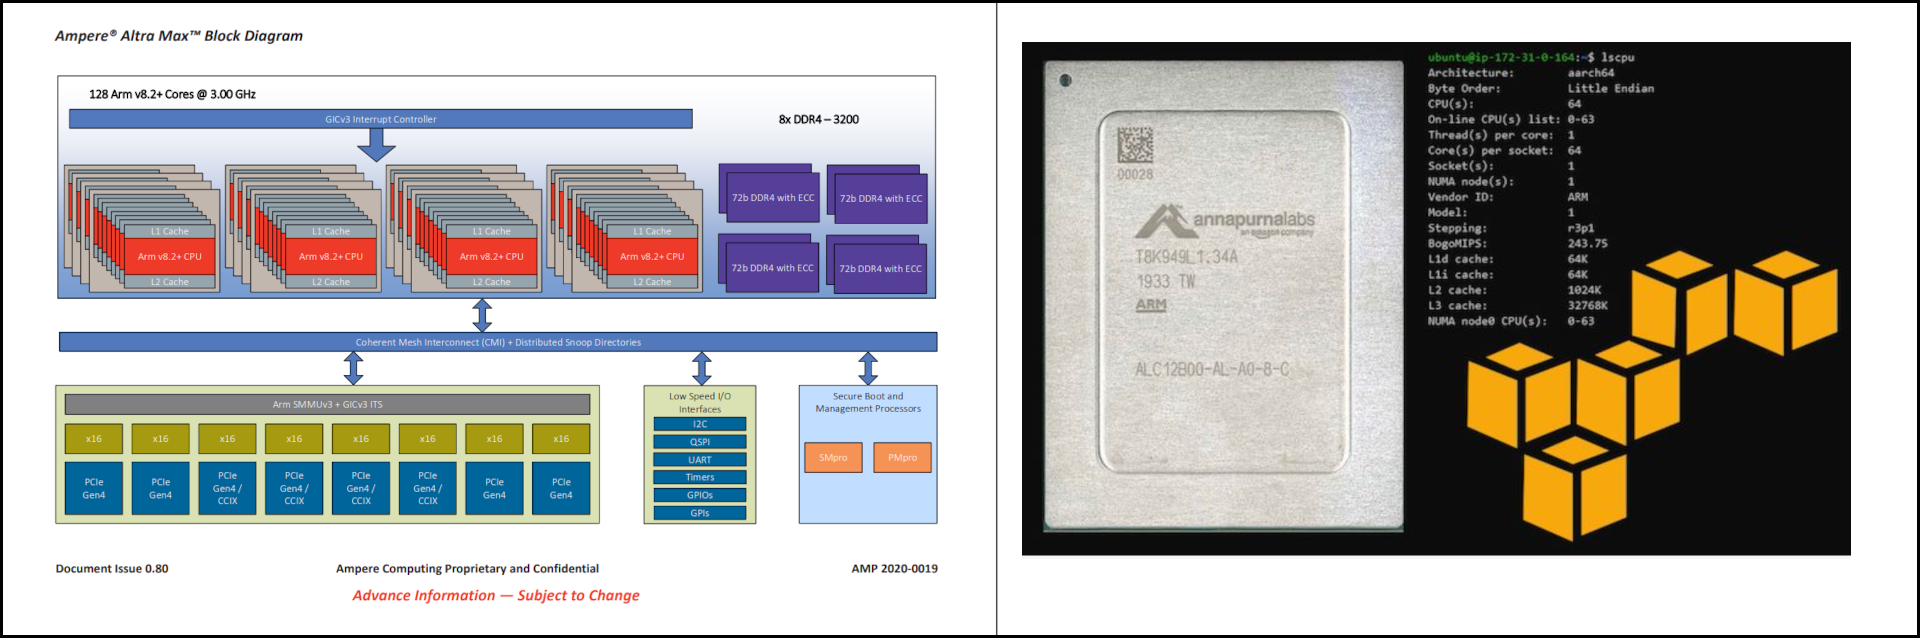 Block Diagram and CPU ID information for the Ampere Atra microprocessor.